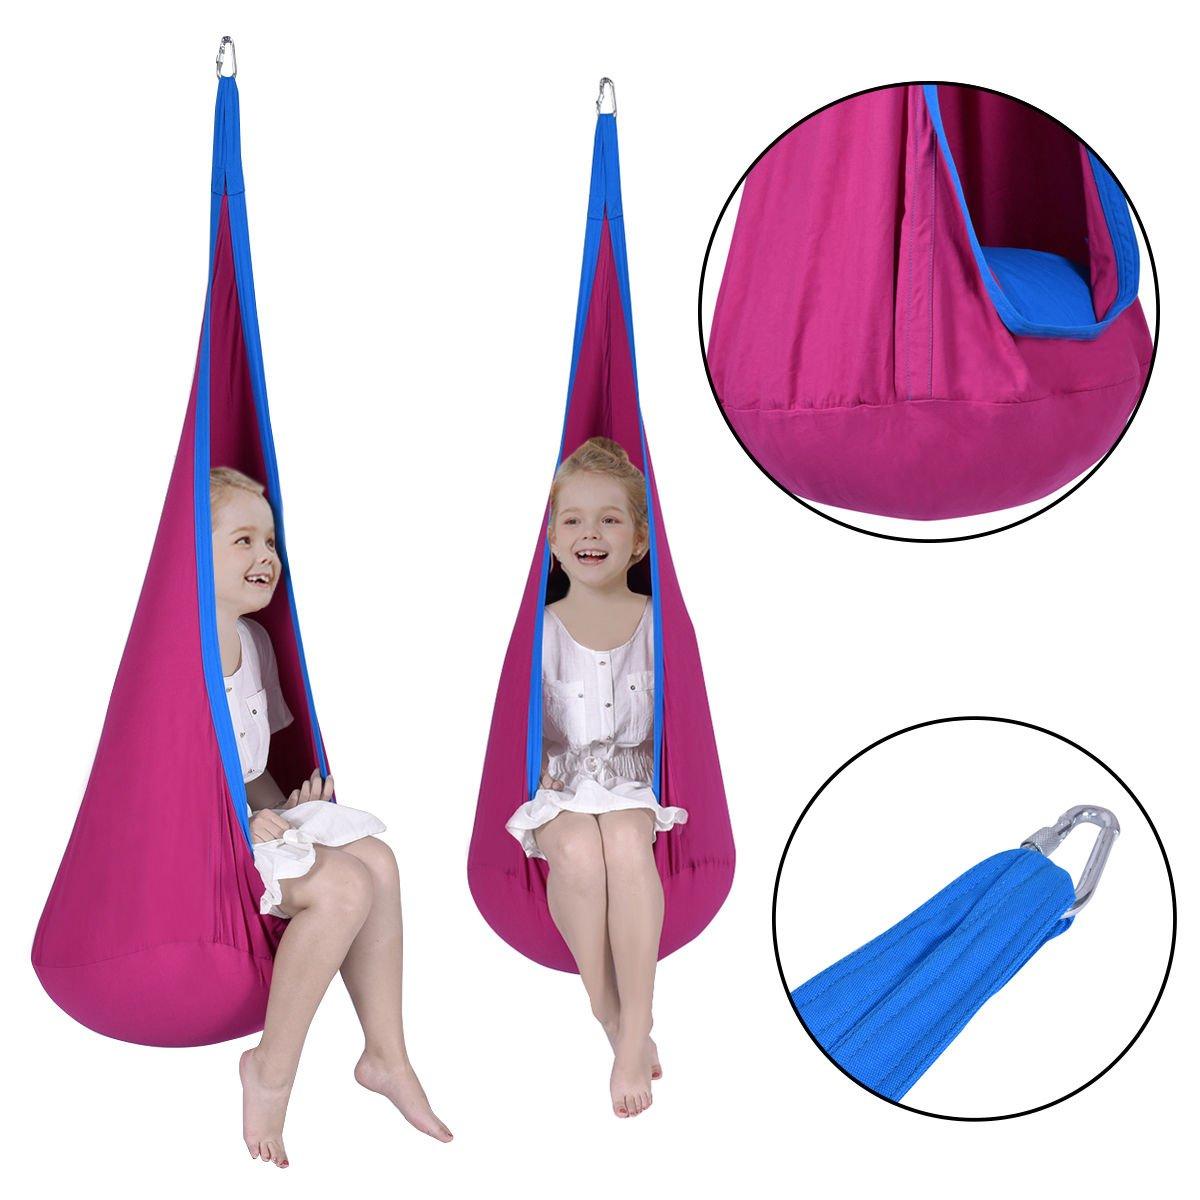 NYC STORES Child Pod Swing Chair Tent Nook Indoor Outdoor Hanging Seat Hammock Kids Rose